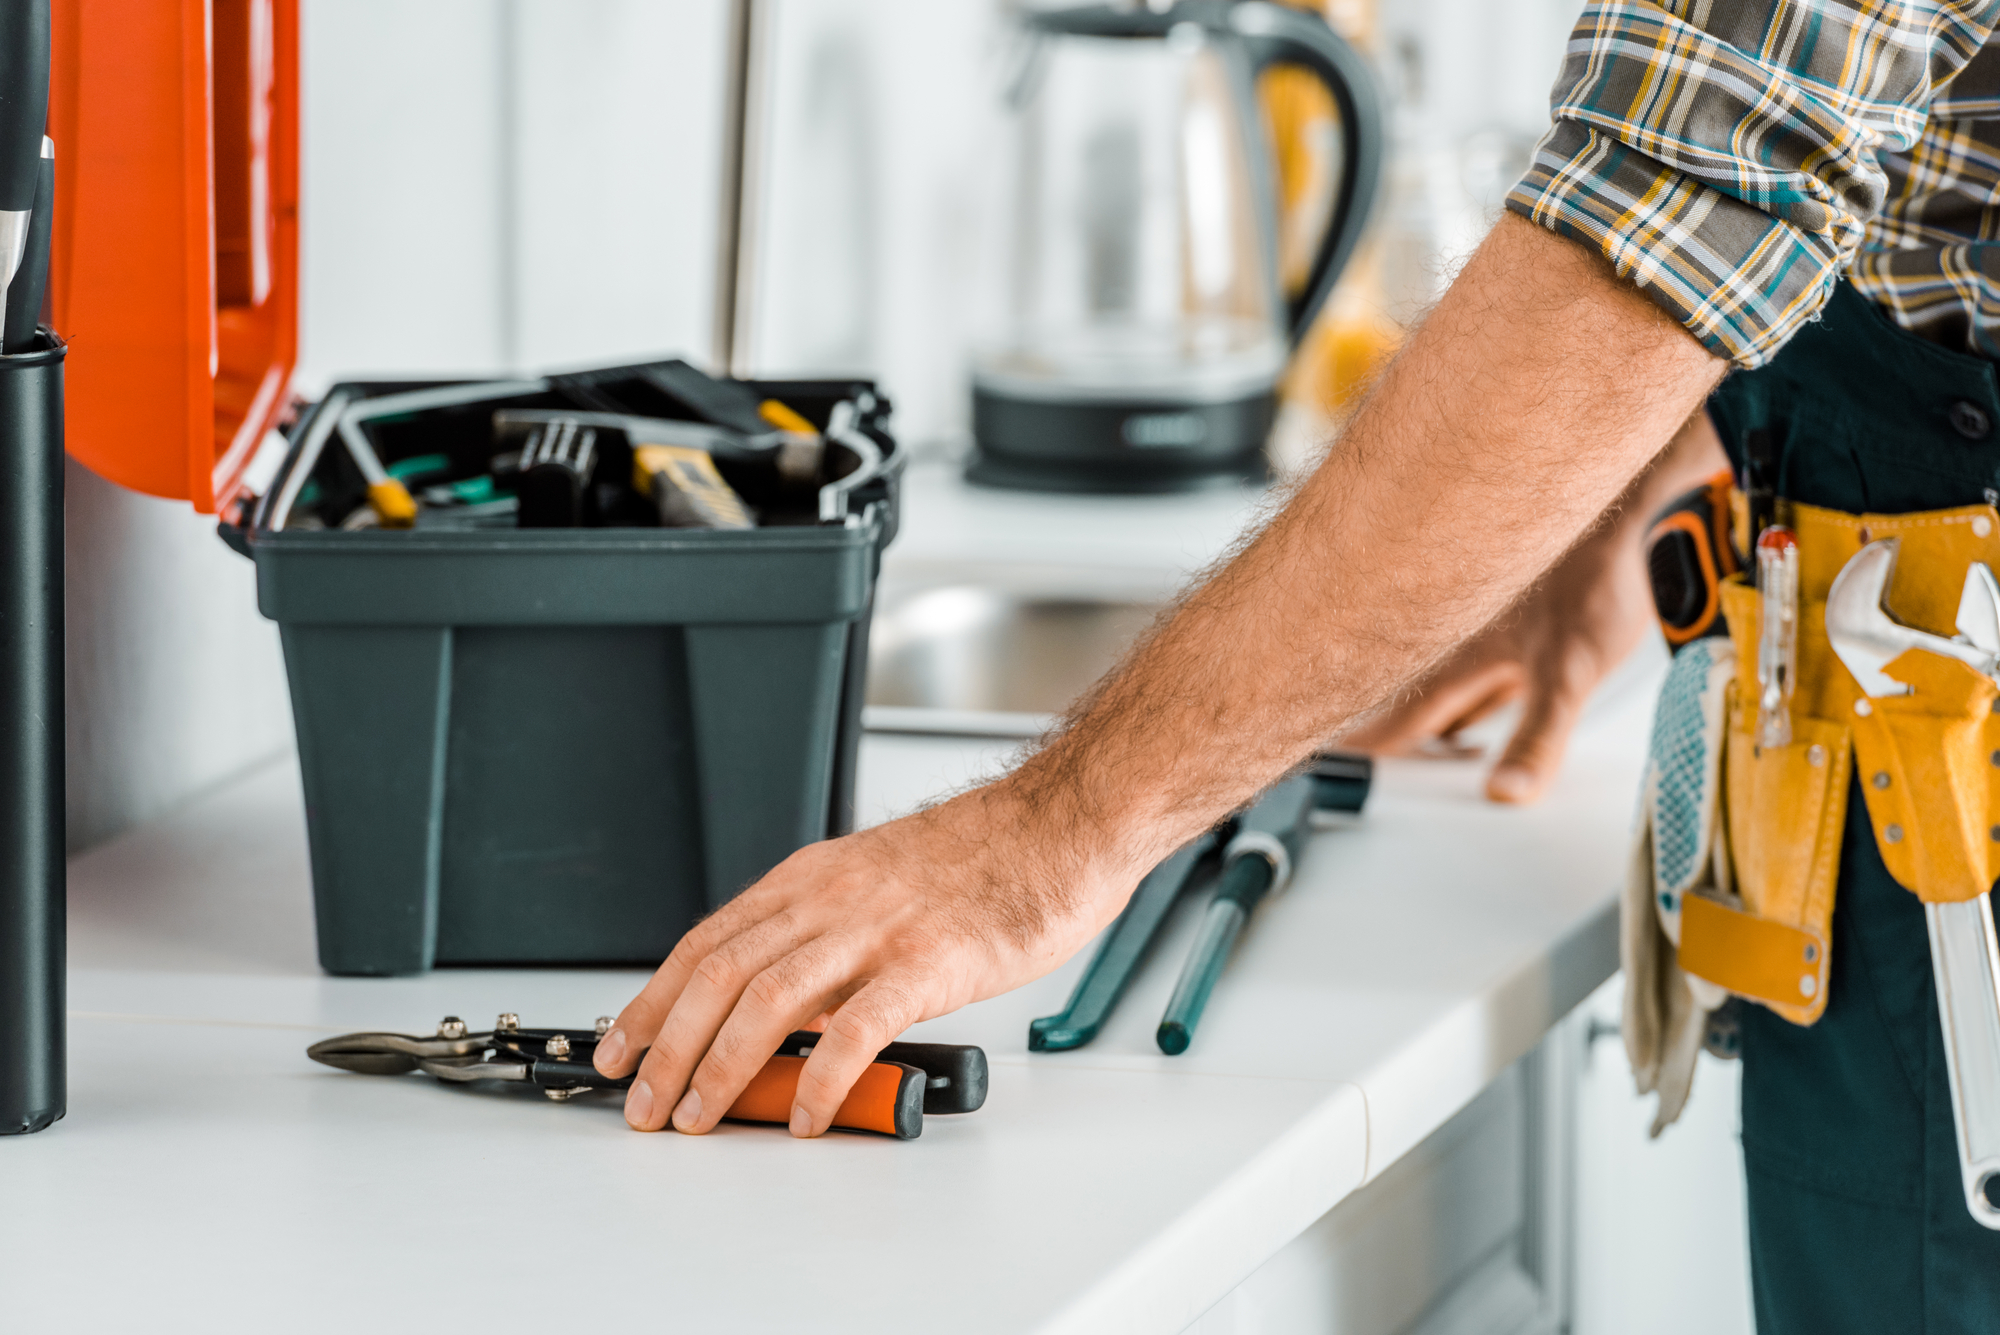 Cropped image of plumber putting tools on kitchen counter in kitchen